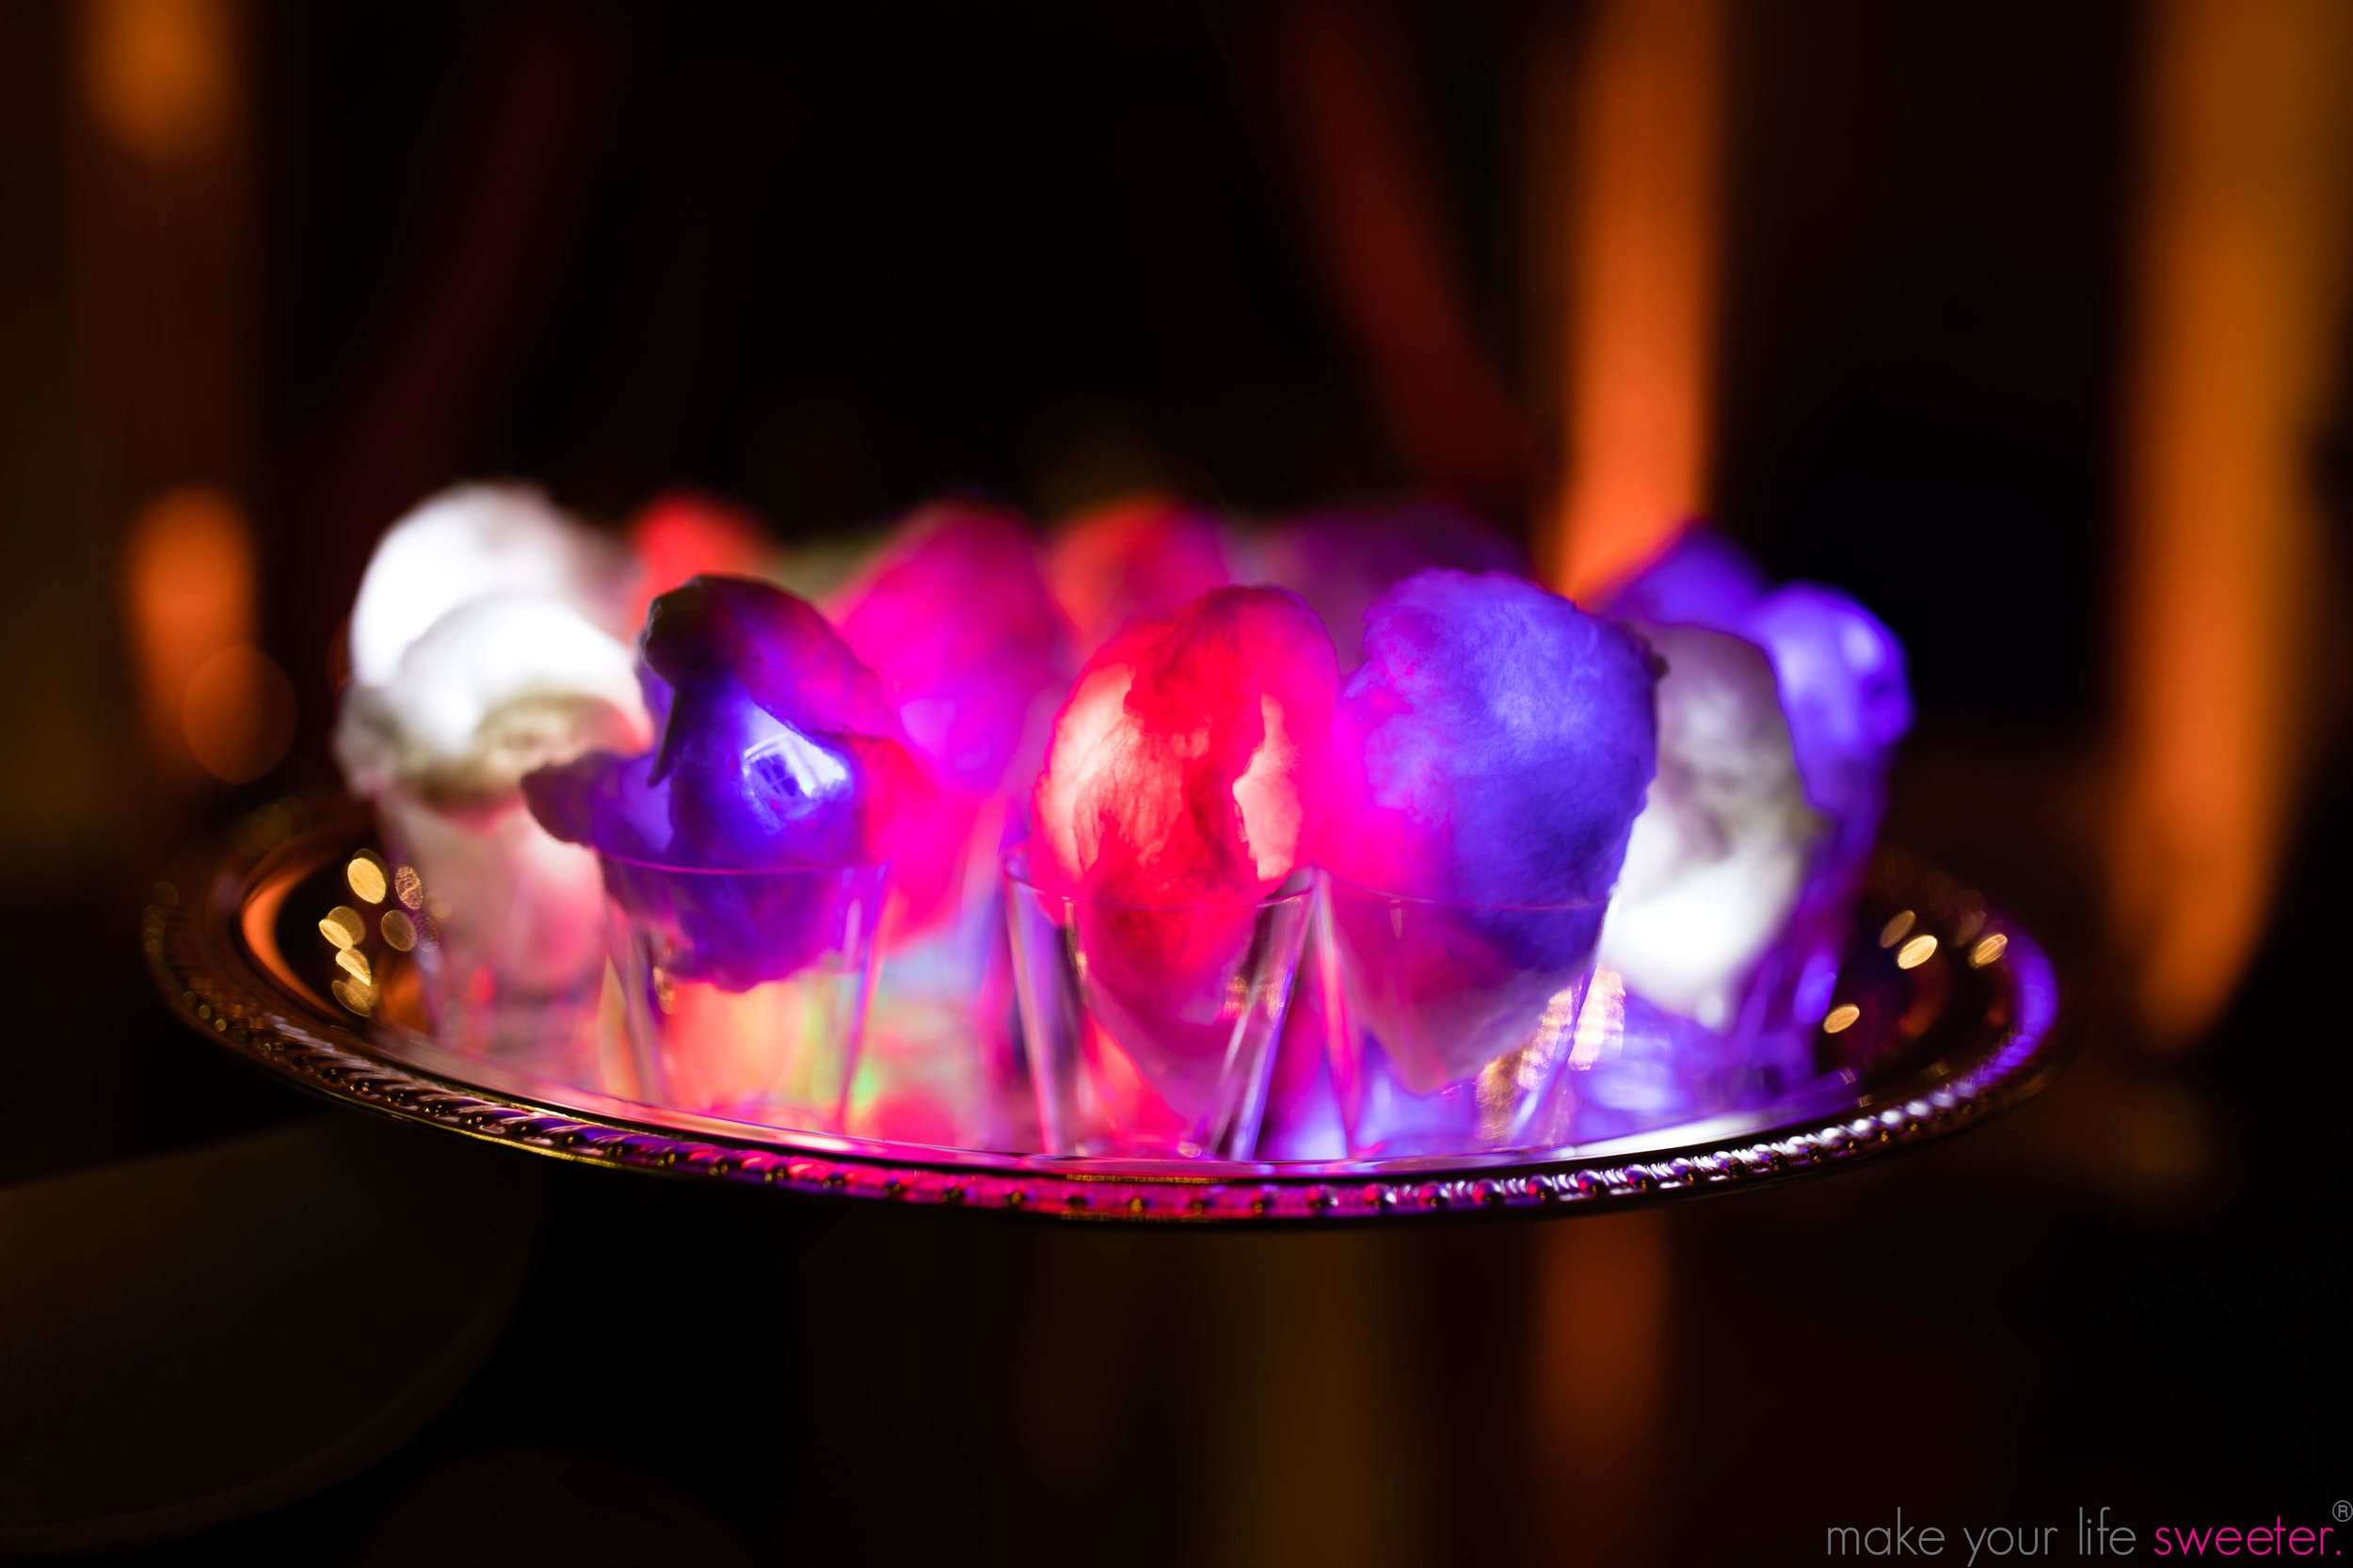 Glow in the Dark Sugaire Organic Cotton Candy - Make Your Life Sweeter Events: The Knot Gala